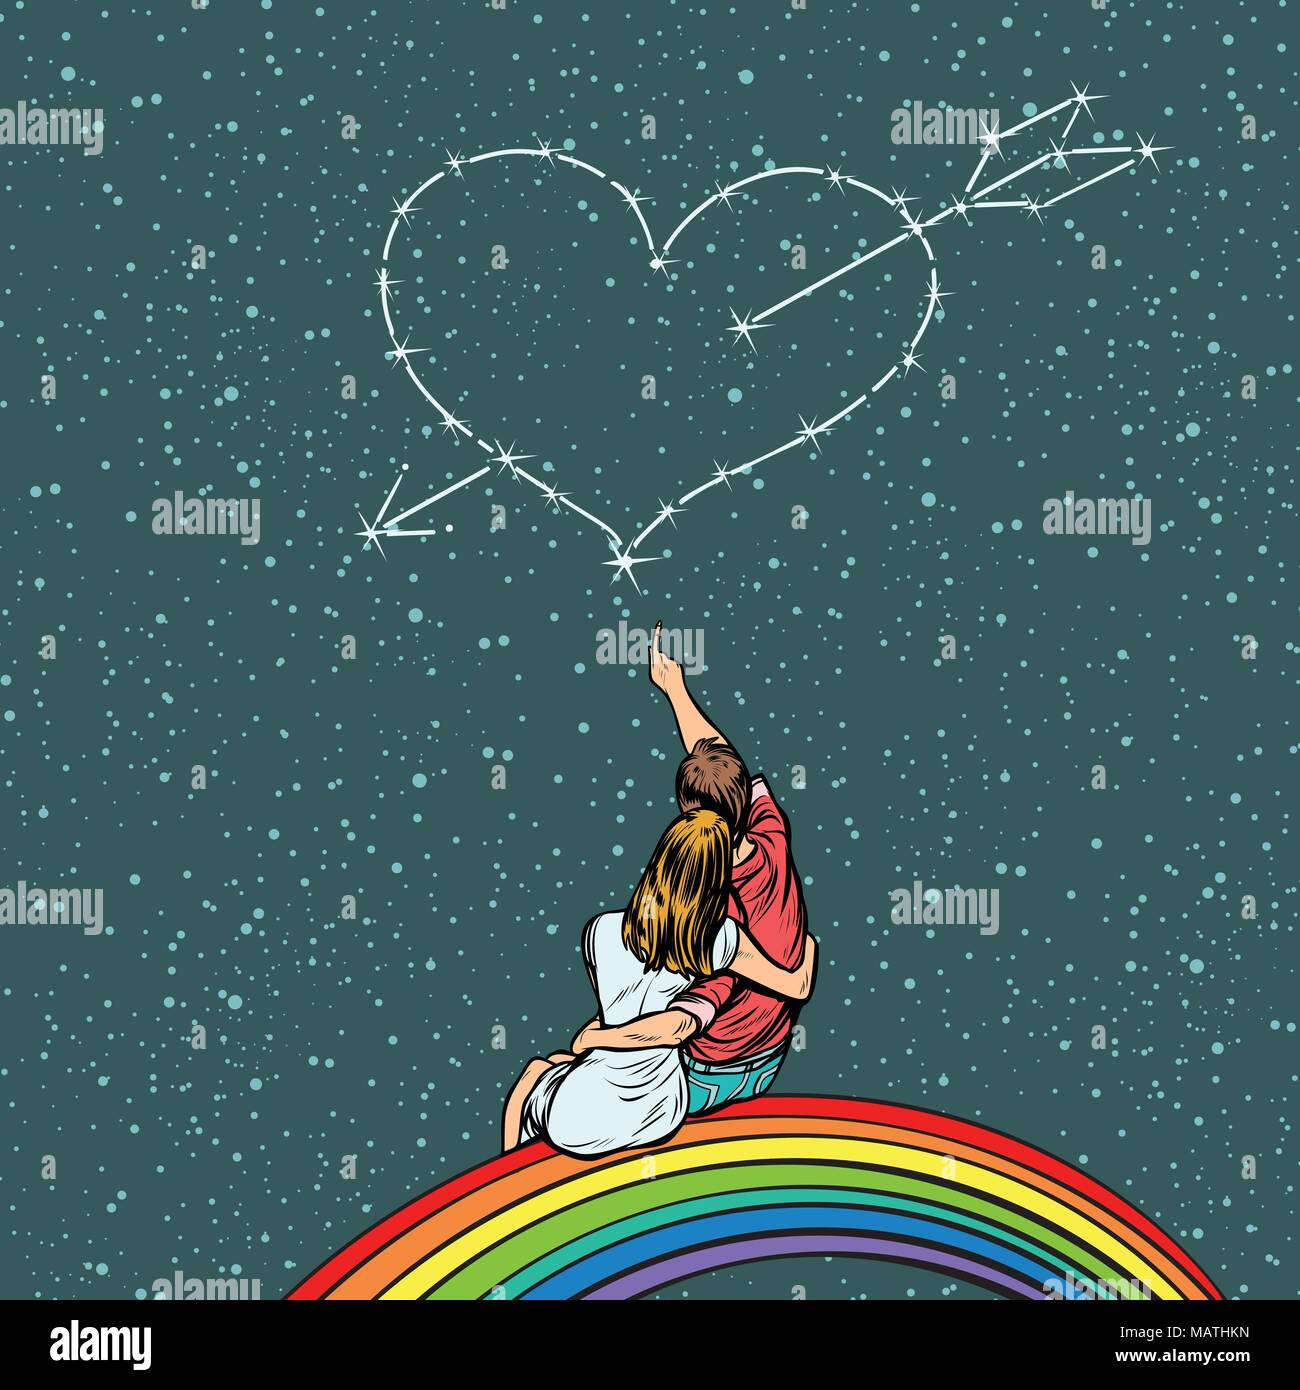 heart pierced by an arrow over a couple in love - Stock Image